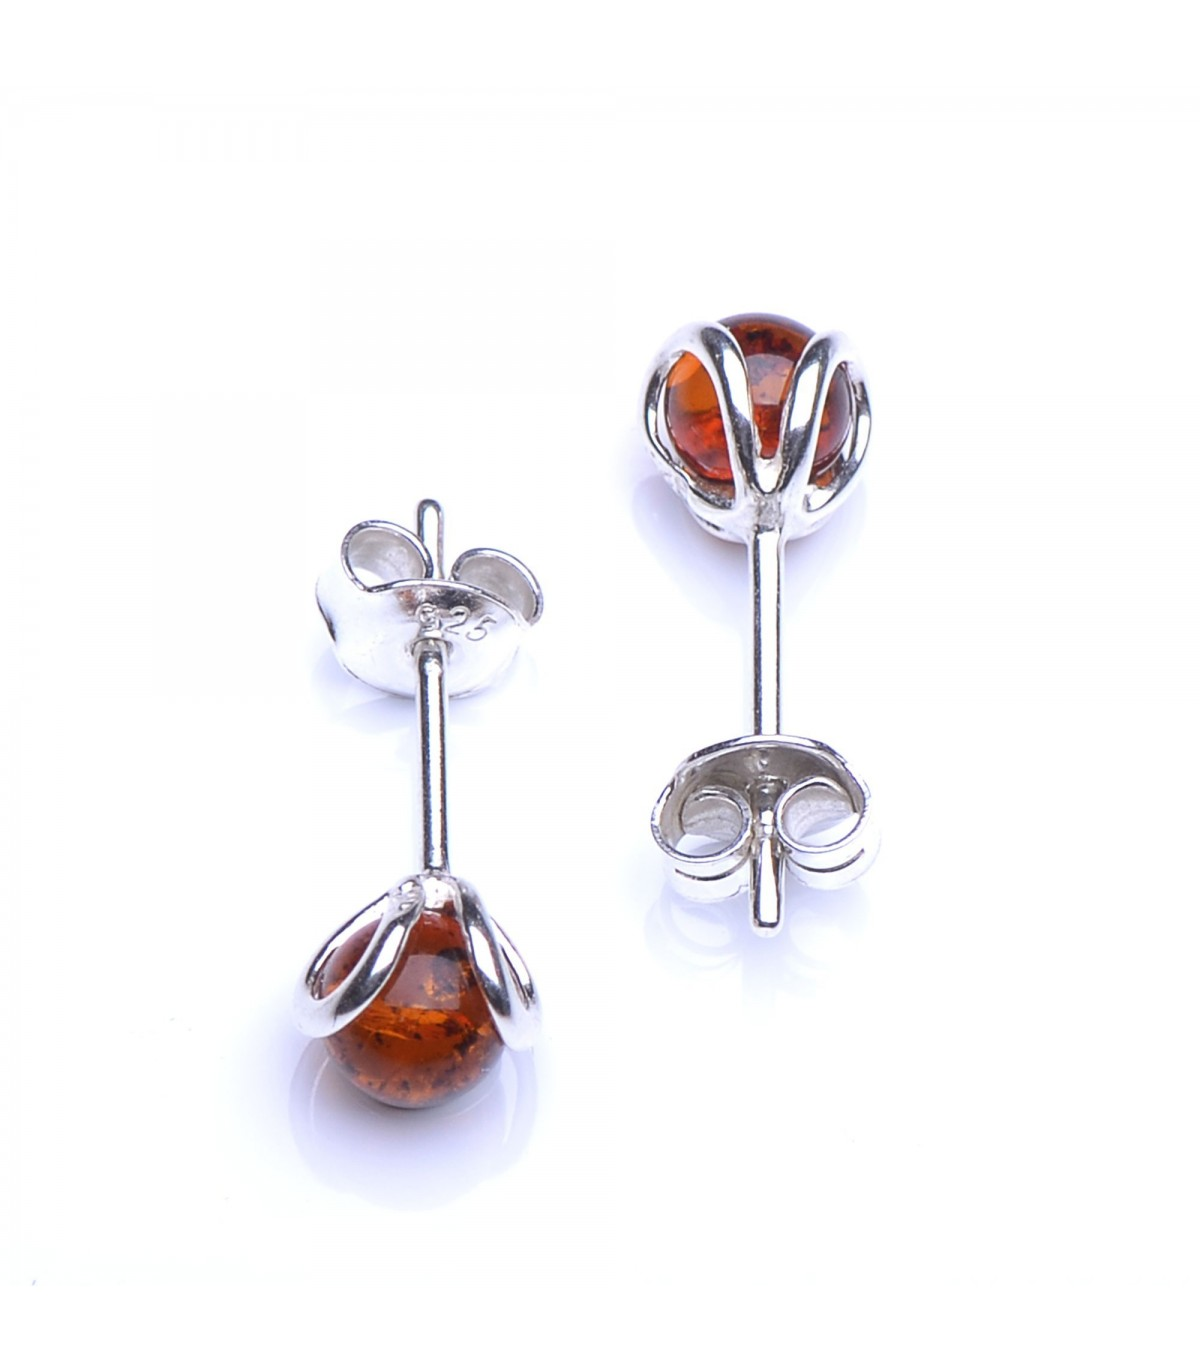 d391afd65 Cognac Baltic Amber & Sterling Silver Stud Earings - Spherical ...